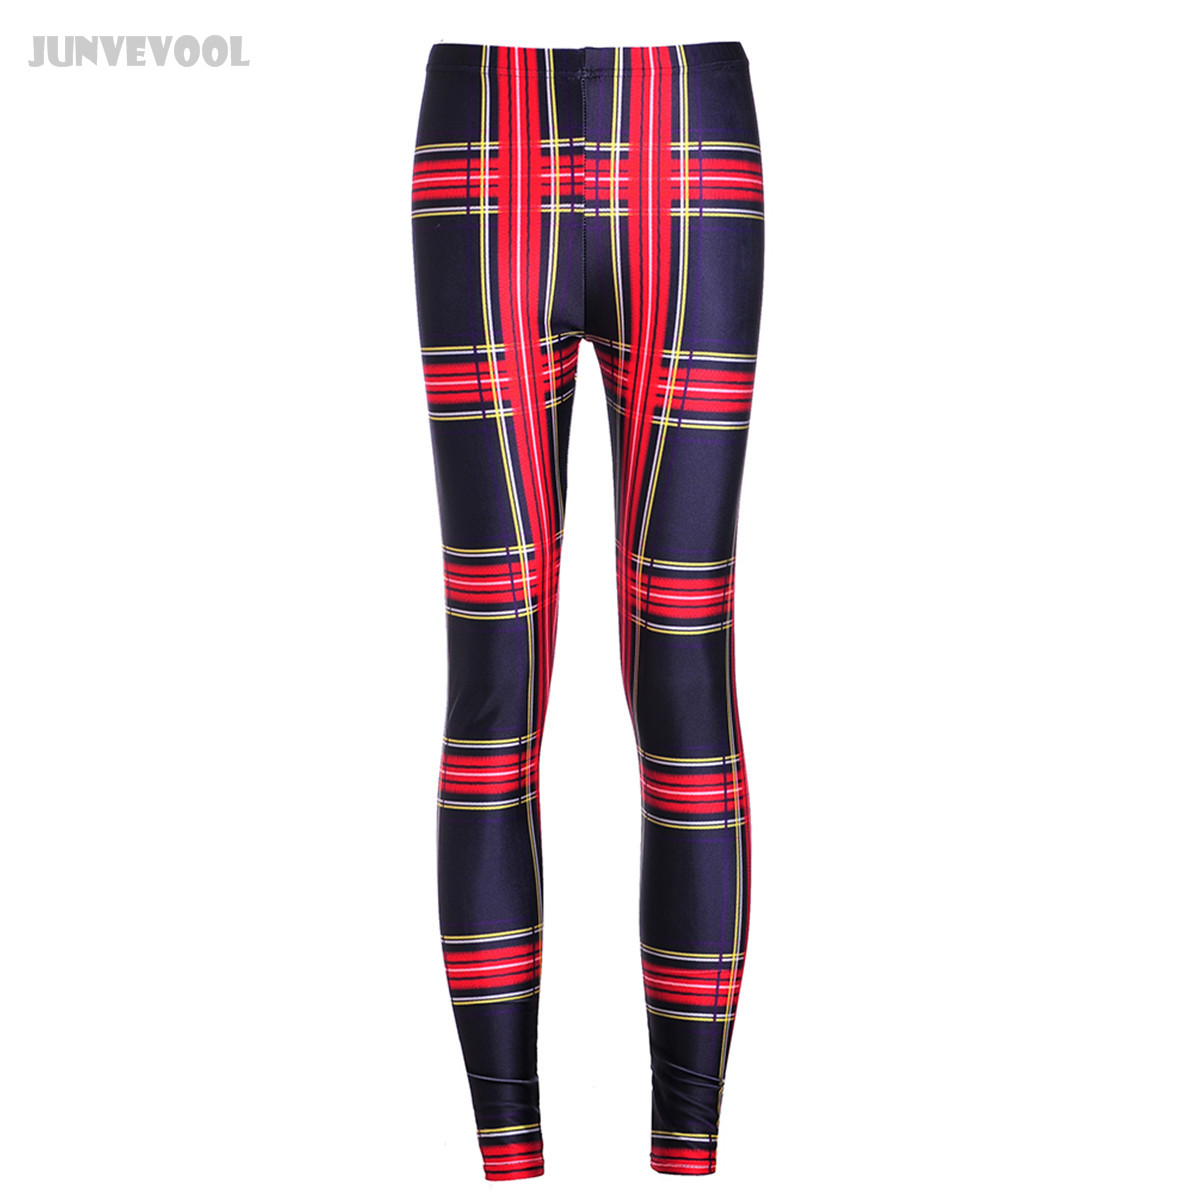 Women Leggings Galaxy Print Gyms Fitness Skinny Compression Slim Causal Dance Pants 3D Grid Yellow Red Striped Print Trousers